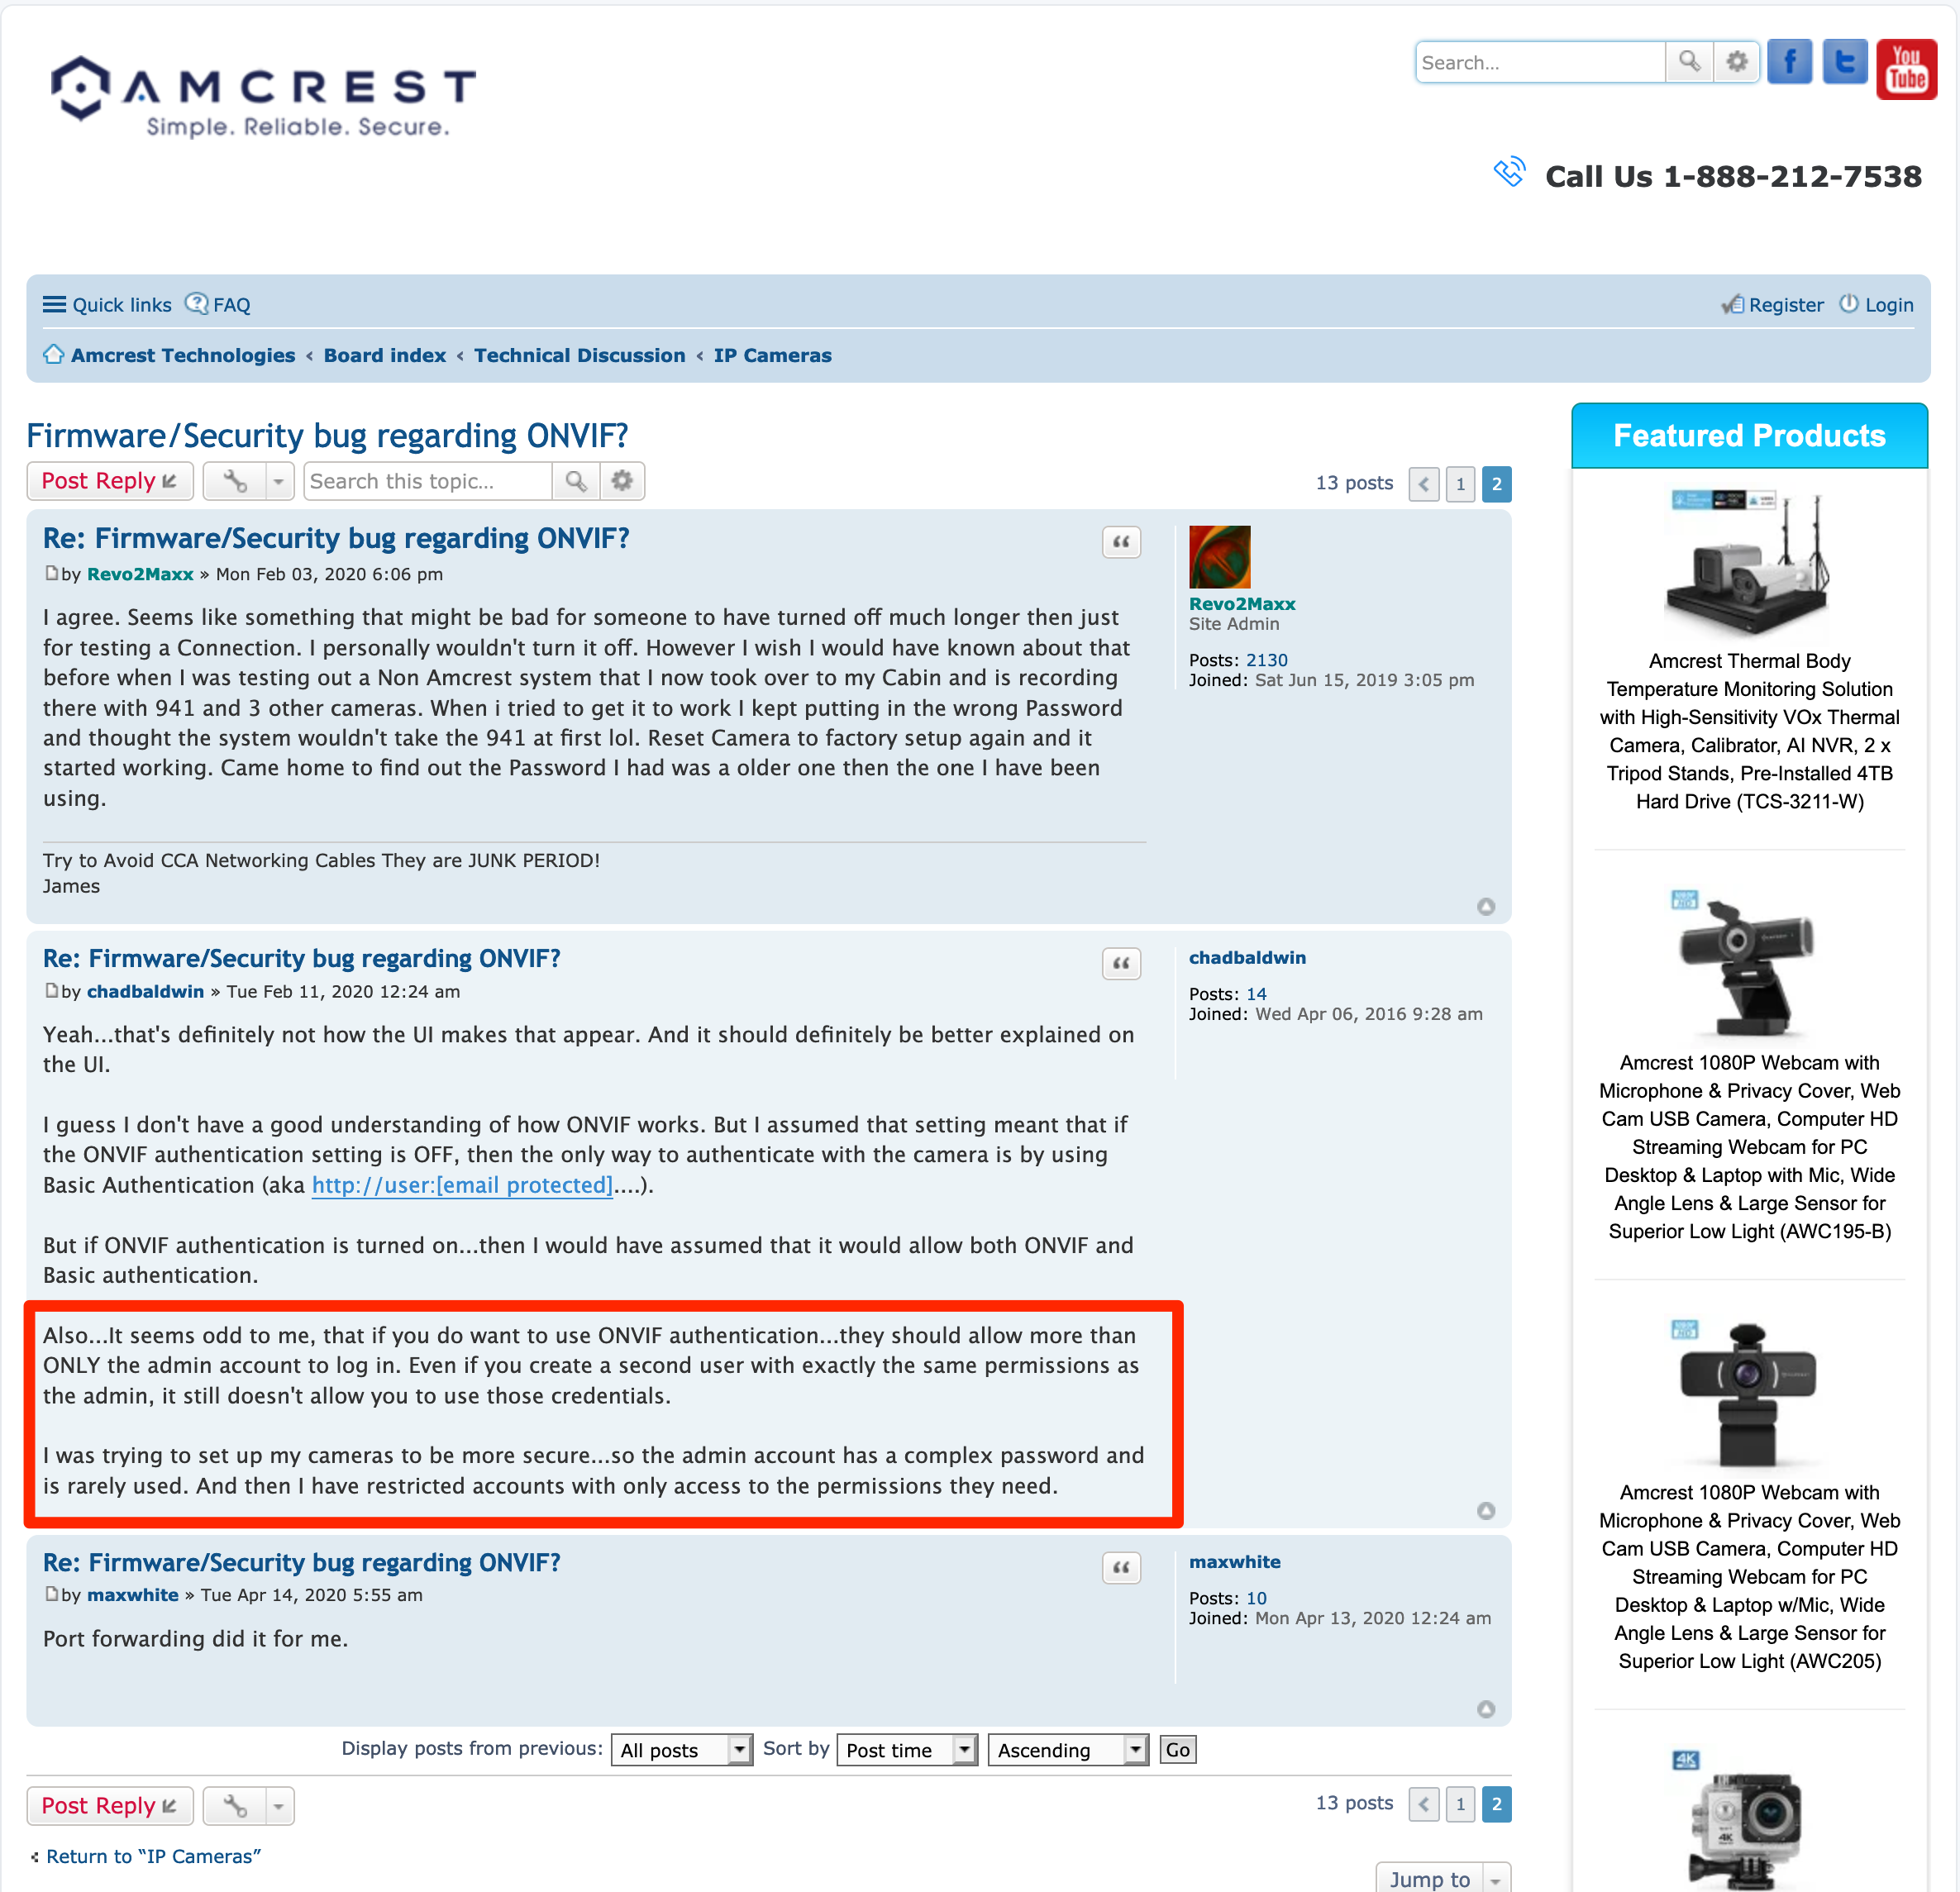 Screenshot showing a post on the amcrest support forums where other people have noticed the lack of multi-user authentication for ONVIF authentication